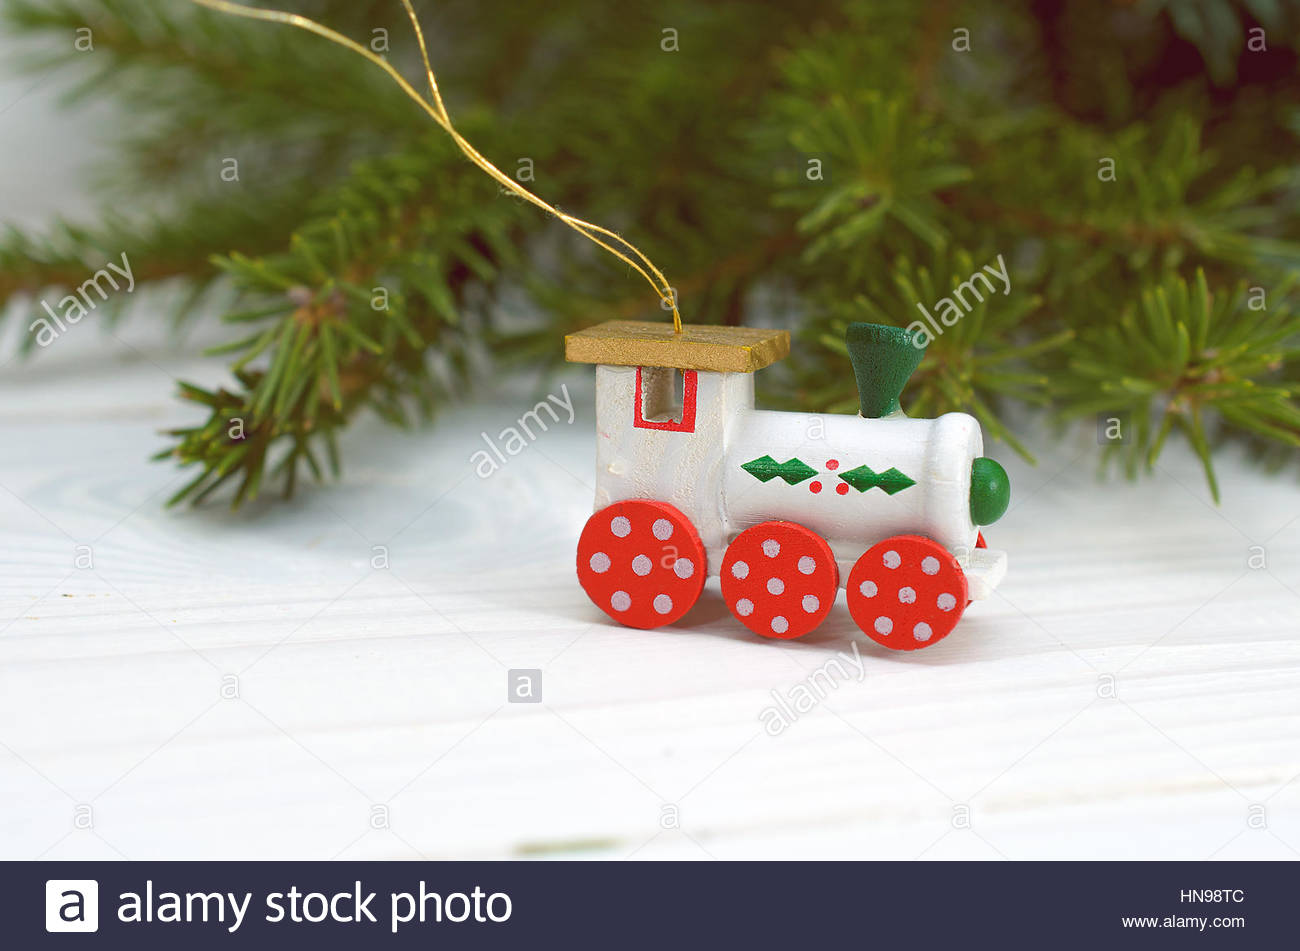 Pine Branches And Wooden Christmas Decorations On A White Background Stock Photo